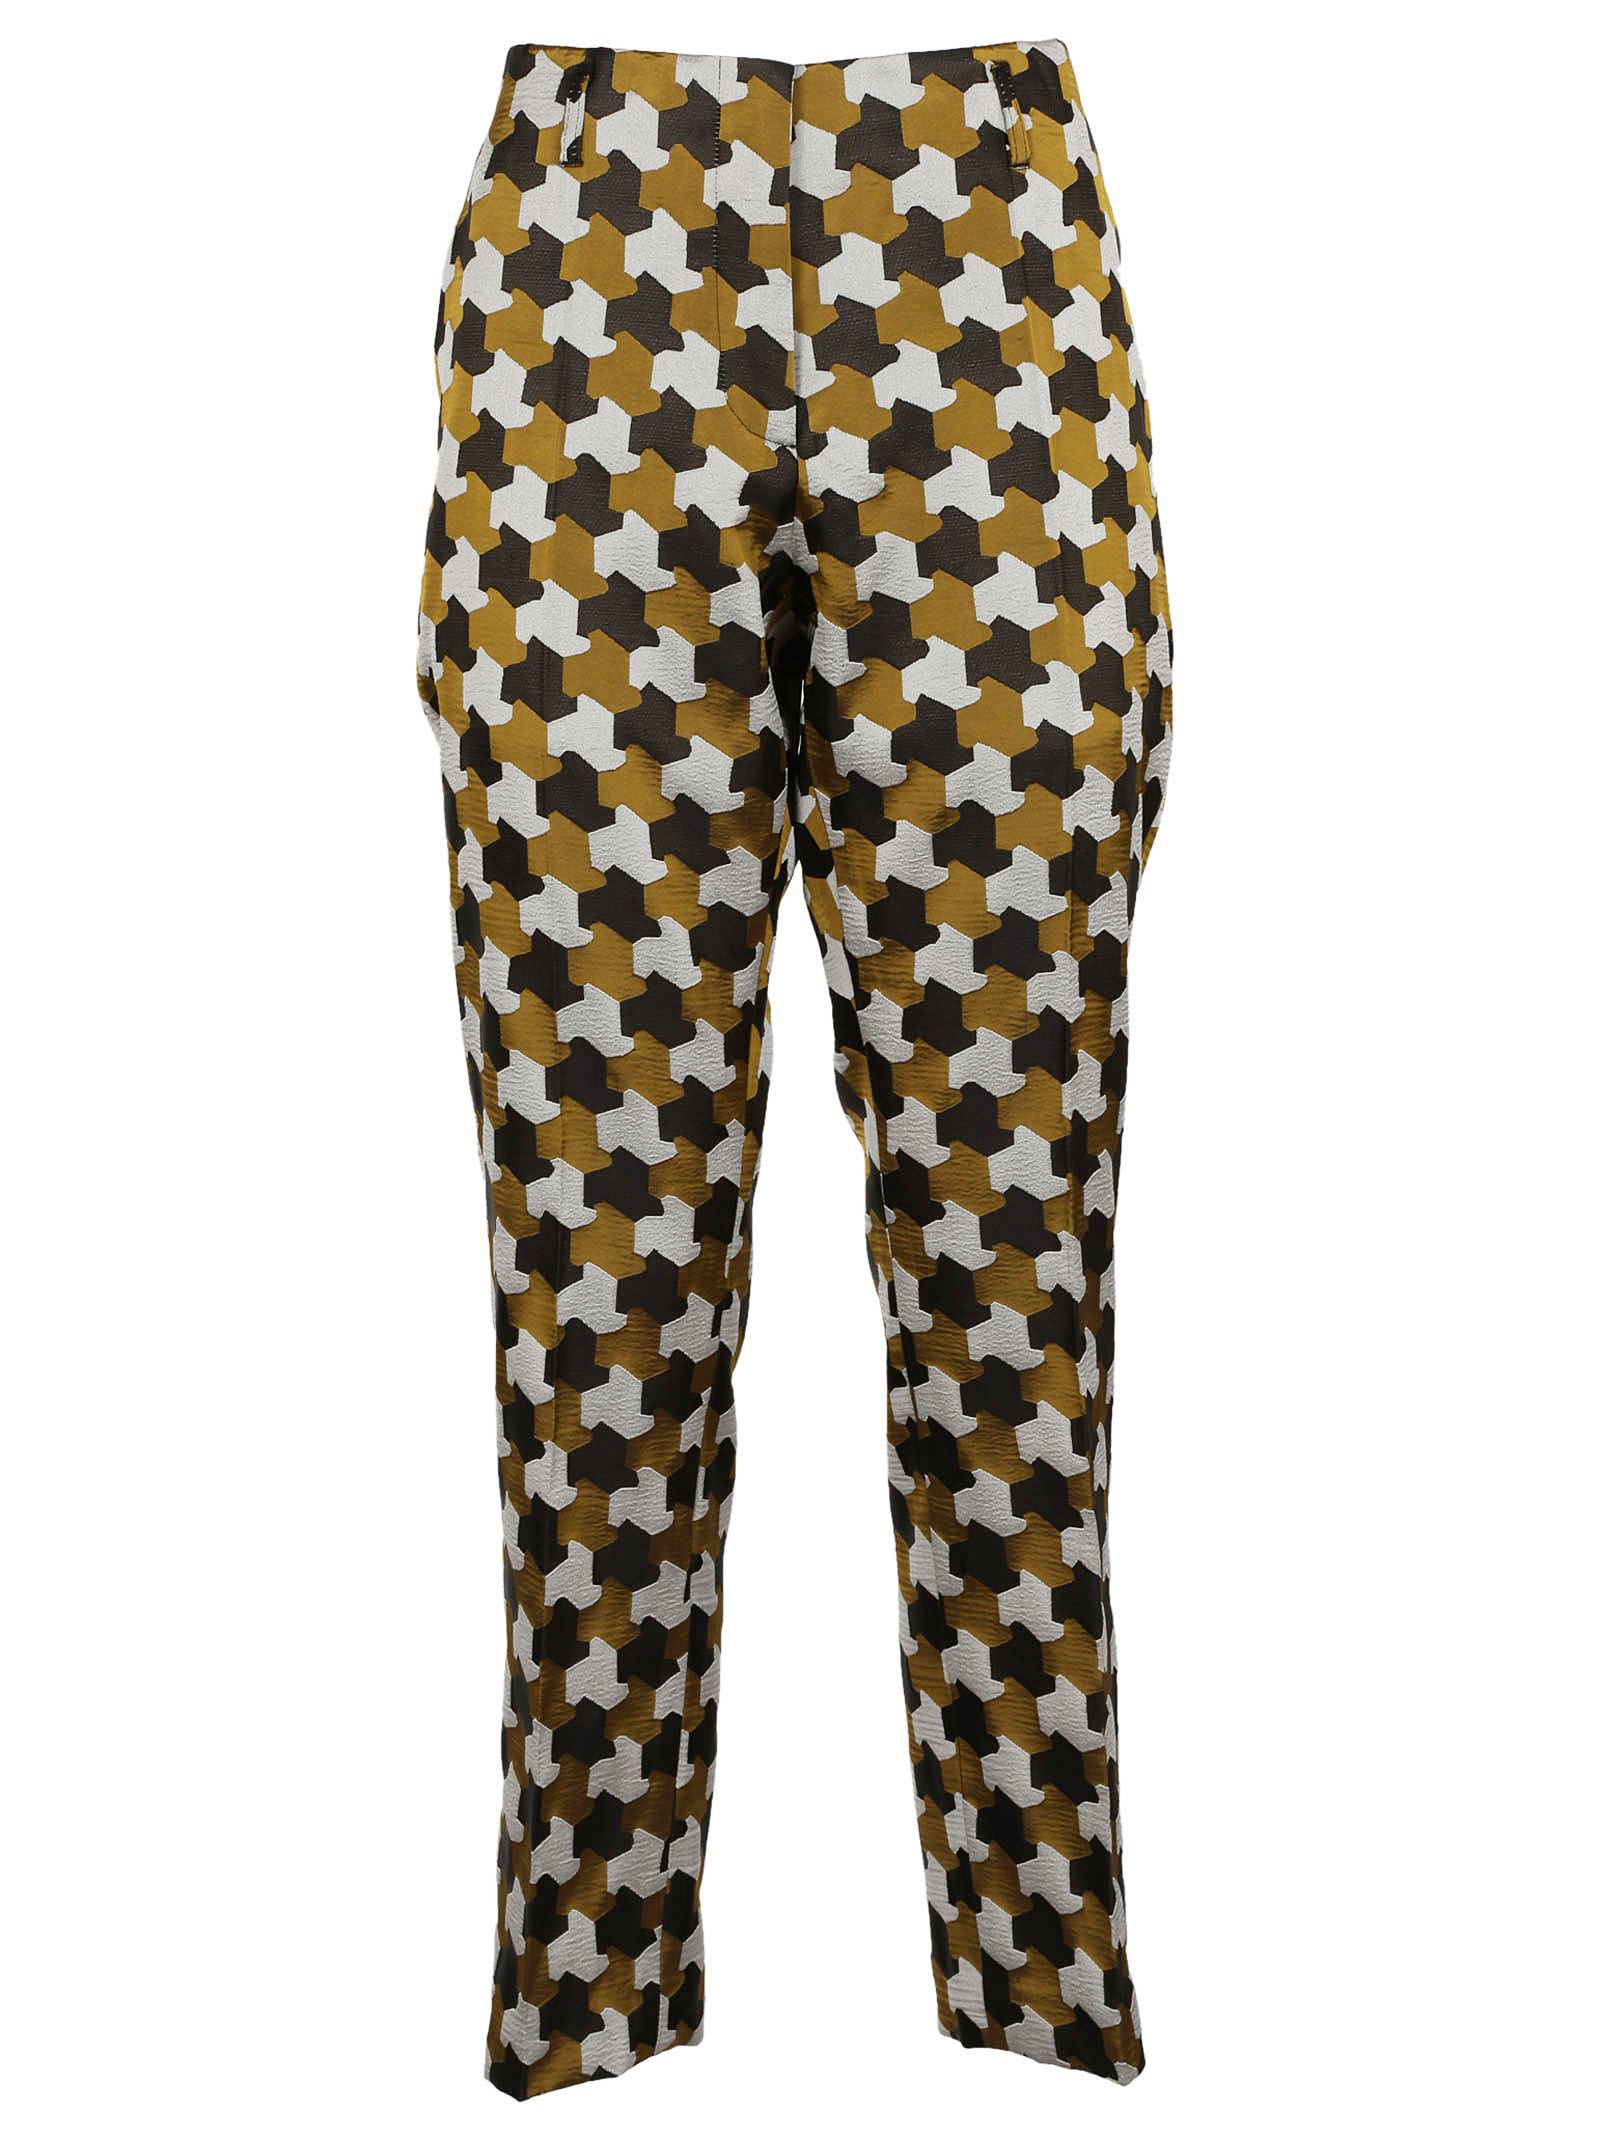 Dries Van Noten Patterned Trousers